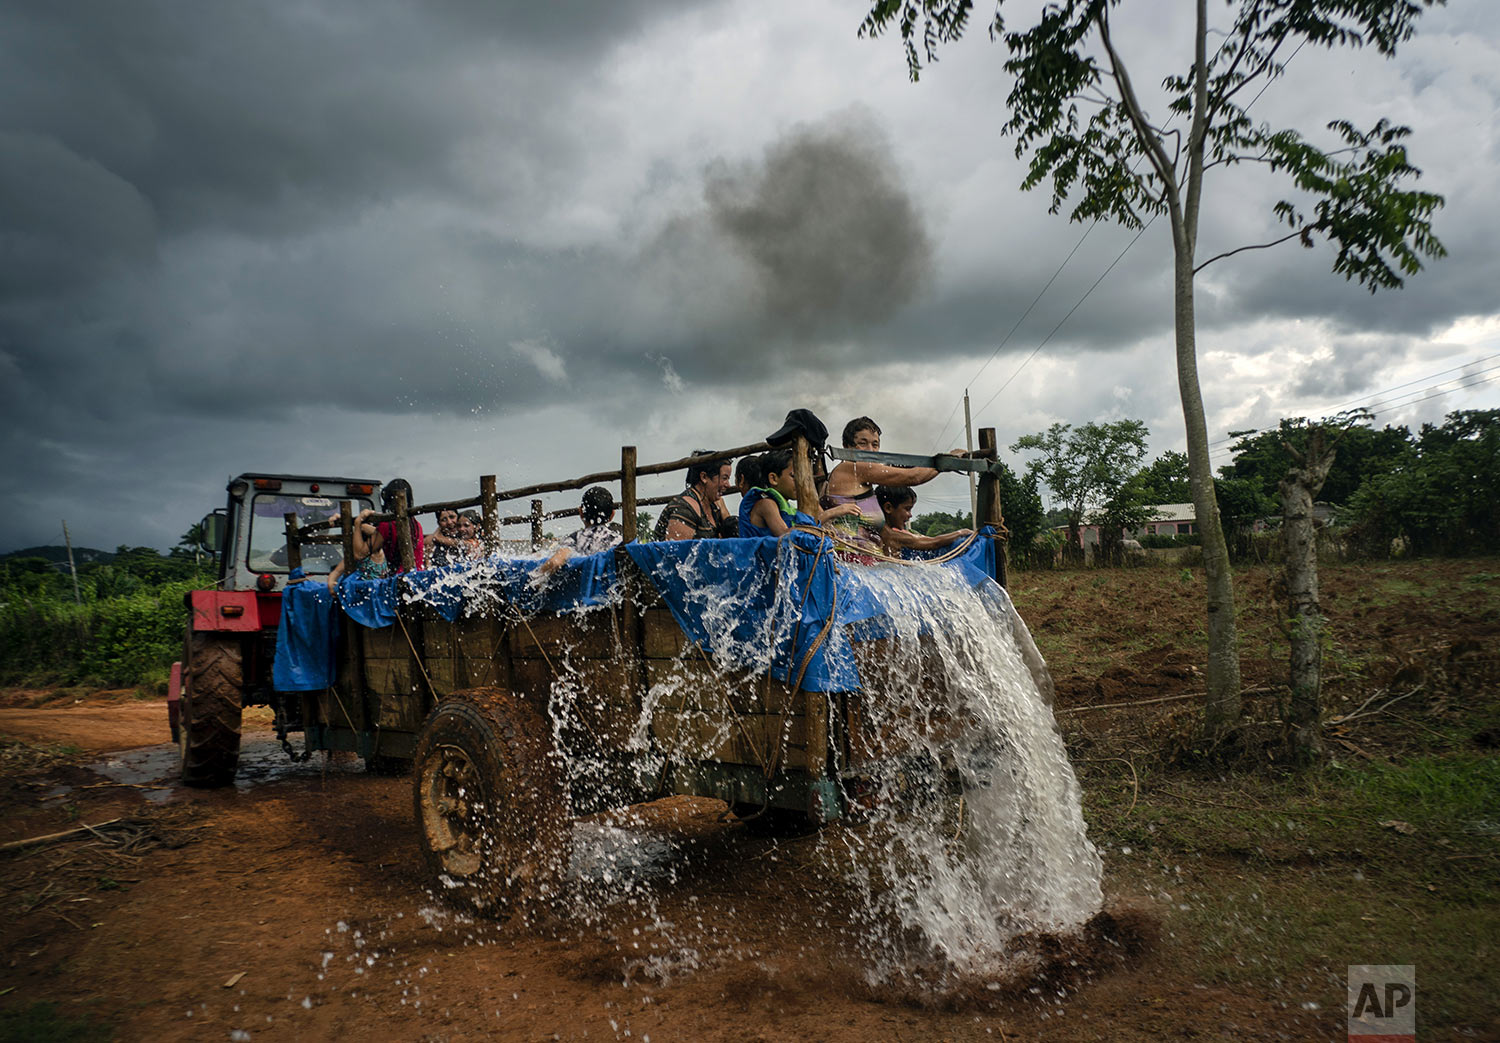 In this Aug. 24, 2019 photo, a tractor pulls a trailer that was converted into a swimming pool as it drives along the roads of El Infernal neighborhood in San Andres in the province of Pinar del Río, Cuba.  (AP Photo/Ramon Espinosa)